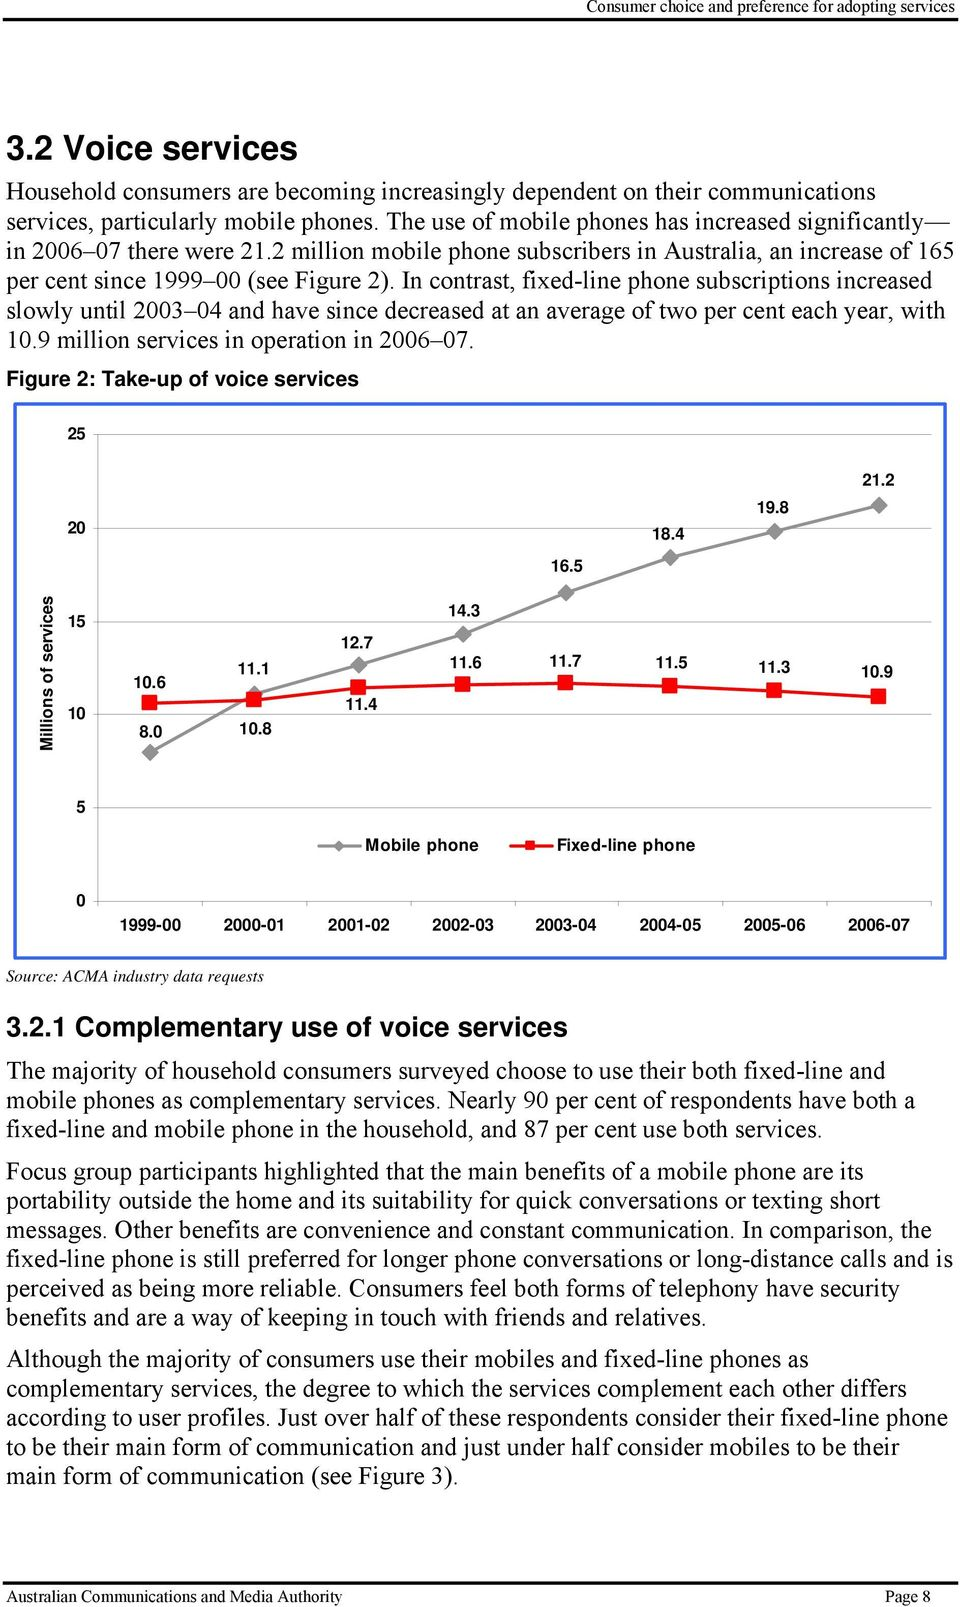 In contrast, fixed-line phone subscriptions increased slowly until 2003 04 and have since decreased at an average of two per cent each year, with 10.9 million services in operation in 2006 07.